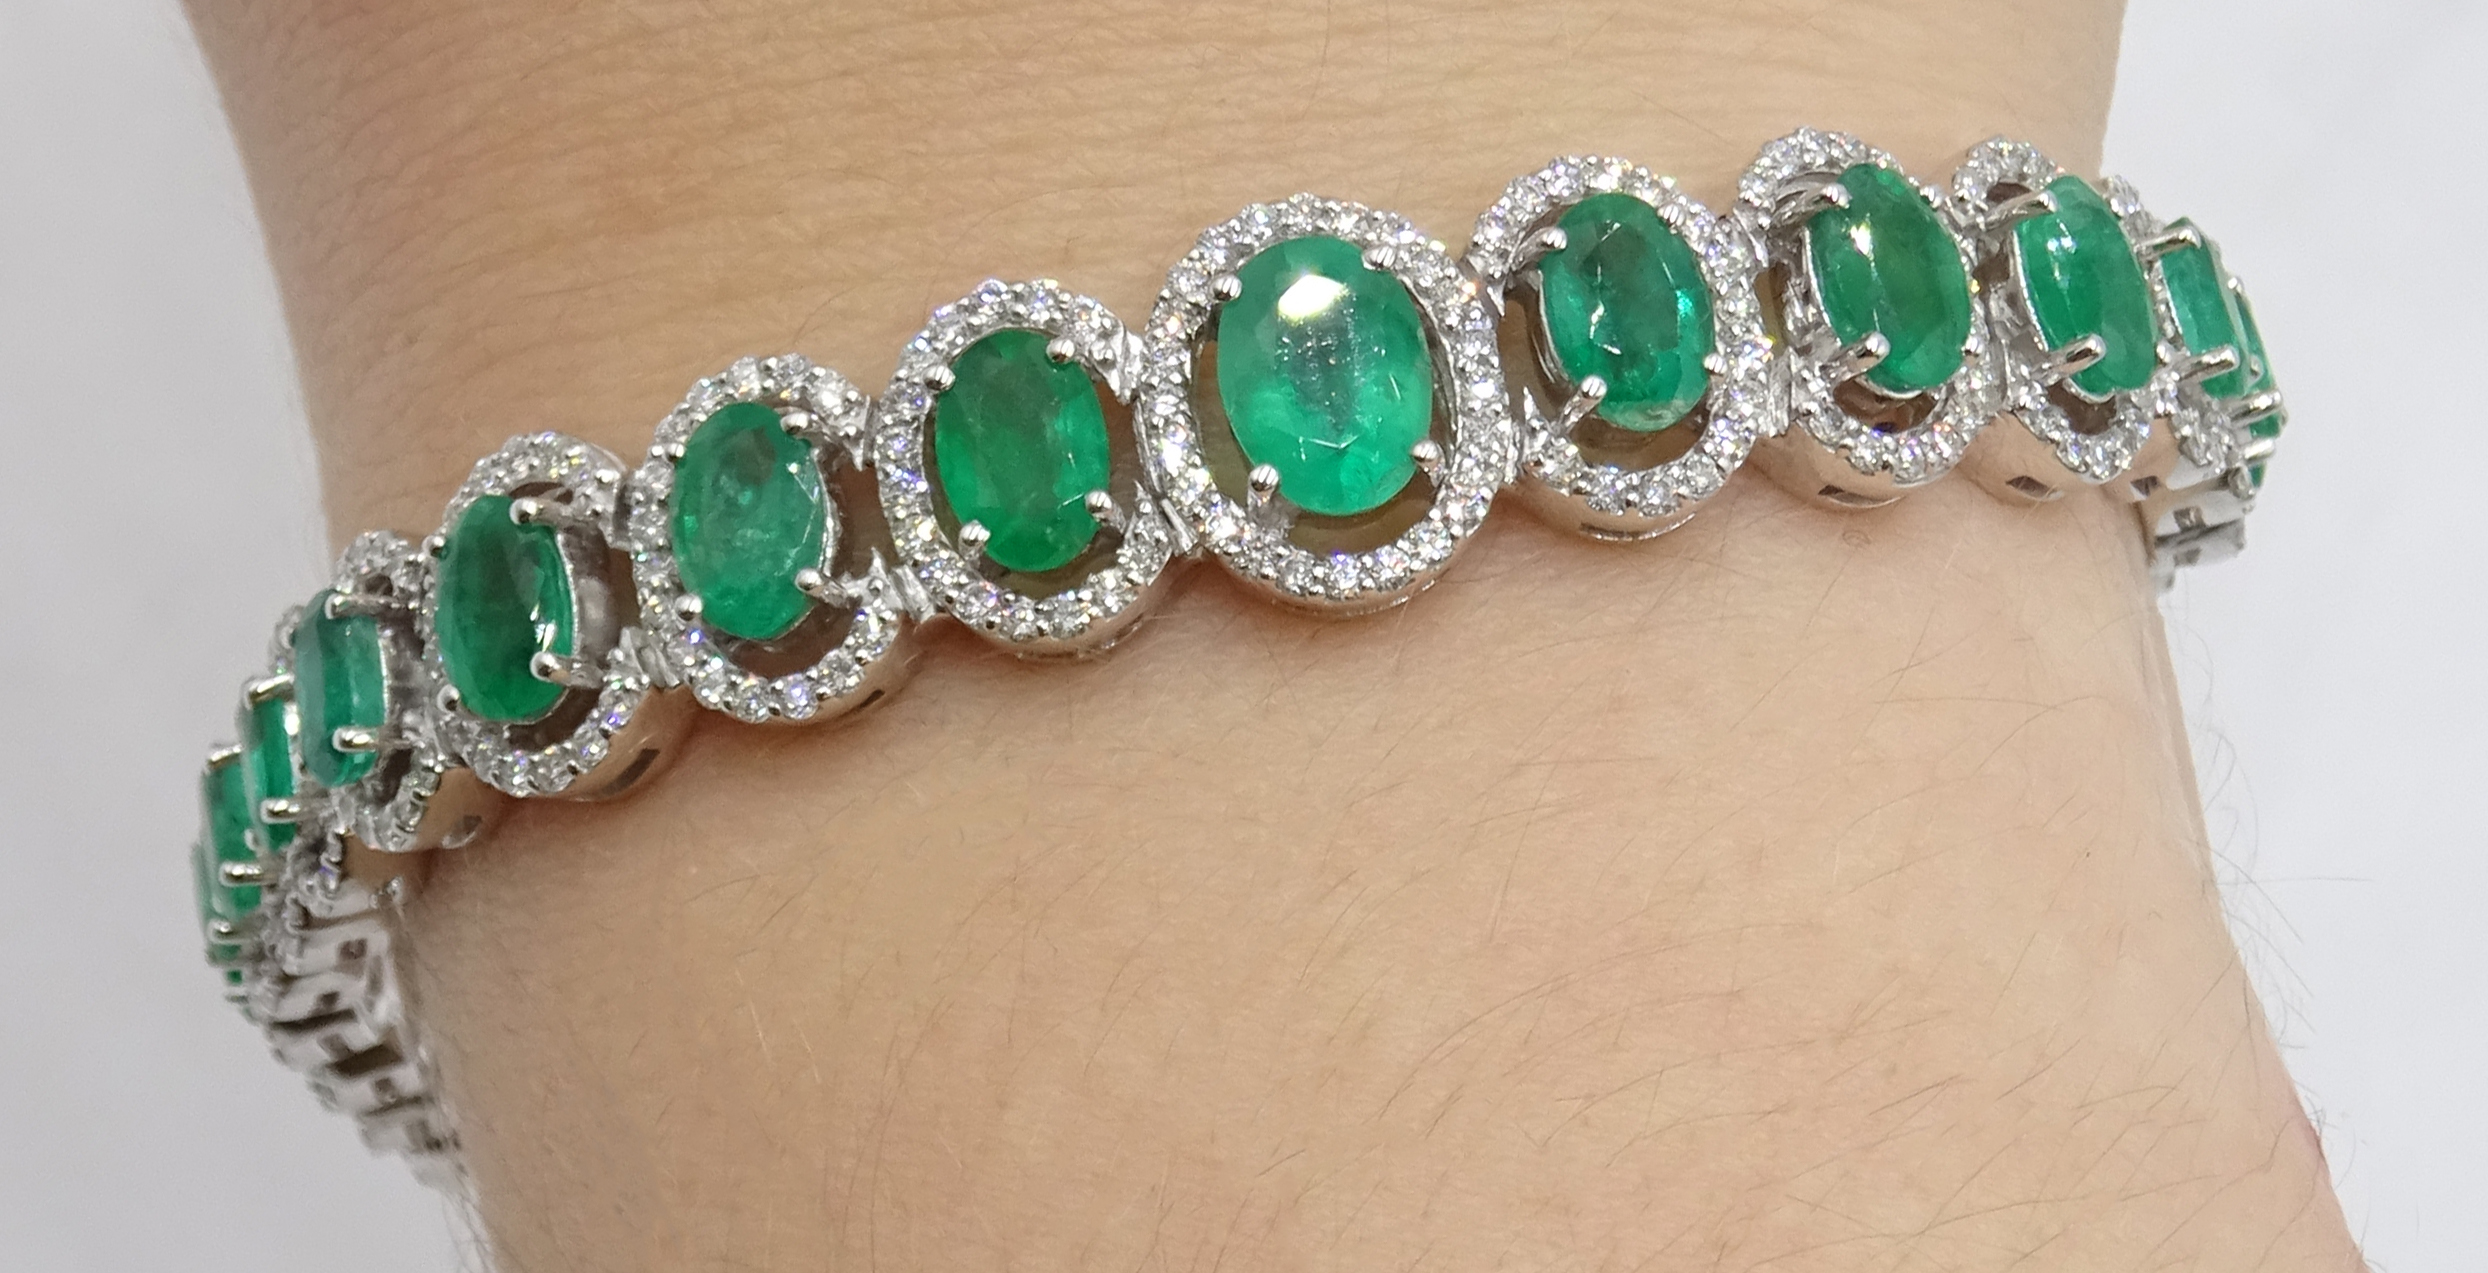 18ct gold graduating oval emerald bracelet, each emerald surrounded by brilliant cut diamonds, total - Image 2 of 5